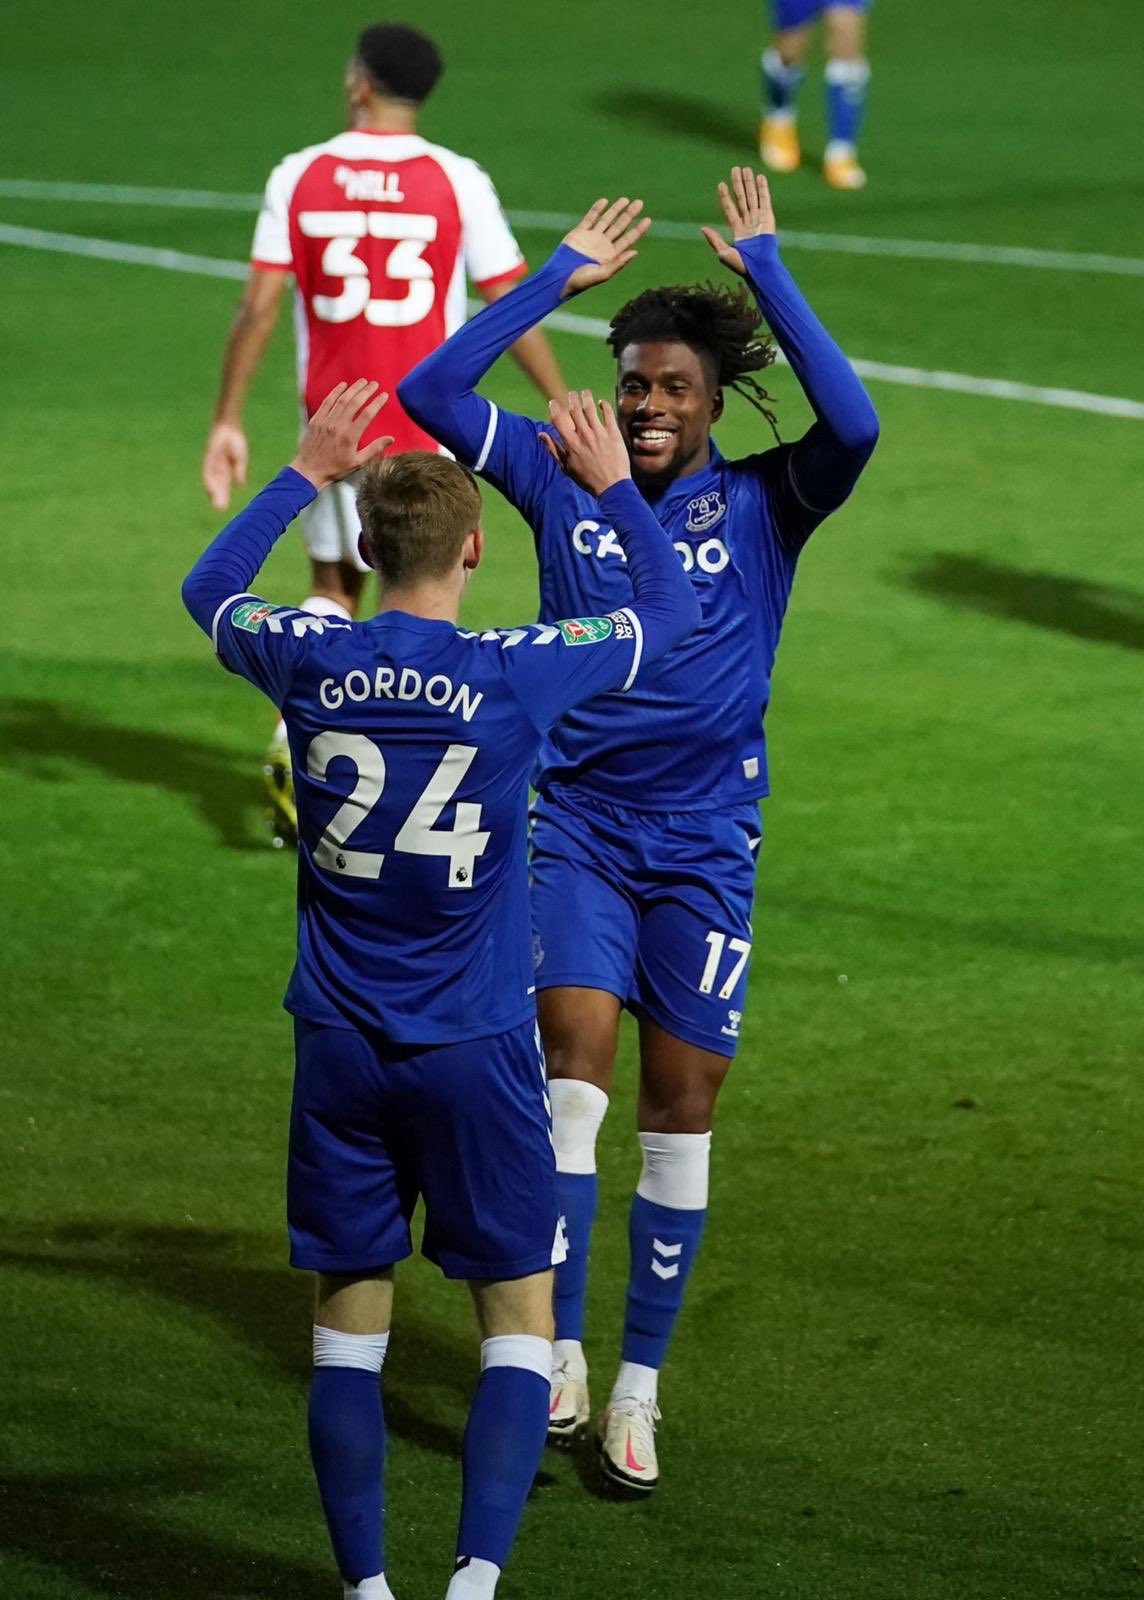 Carabao Cup: Iwobi Scores, Assist In Everton's Win Vs Fleetwood Town; Iheanacho Suffers Defeat With Leicester At Home To Arsenal